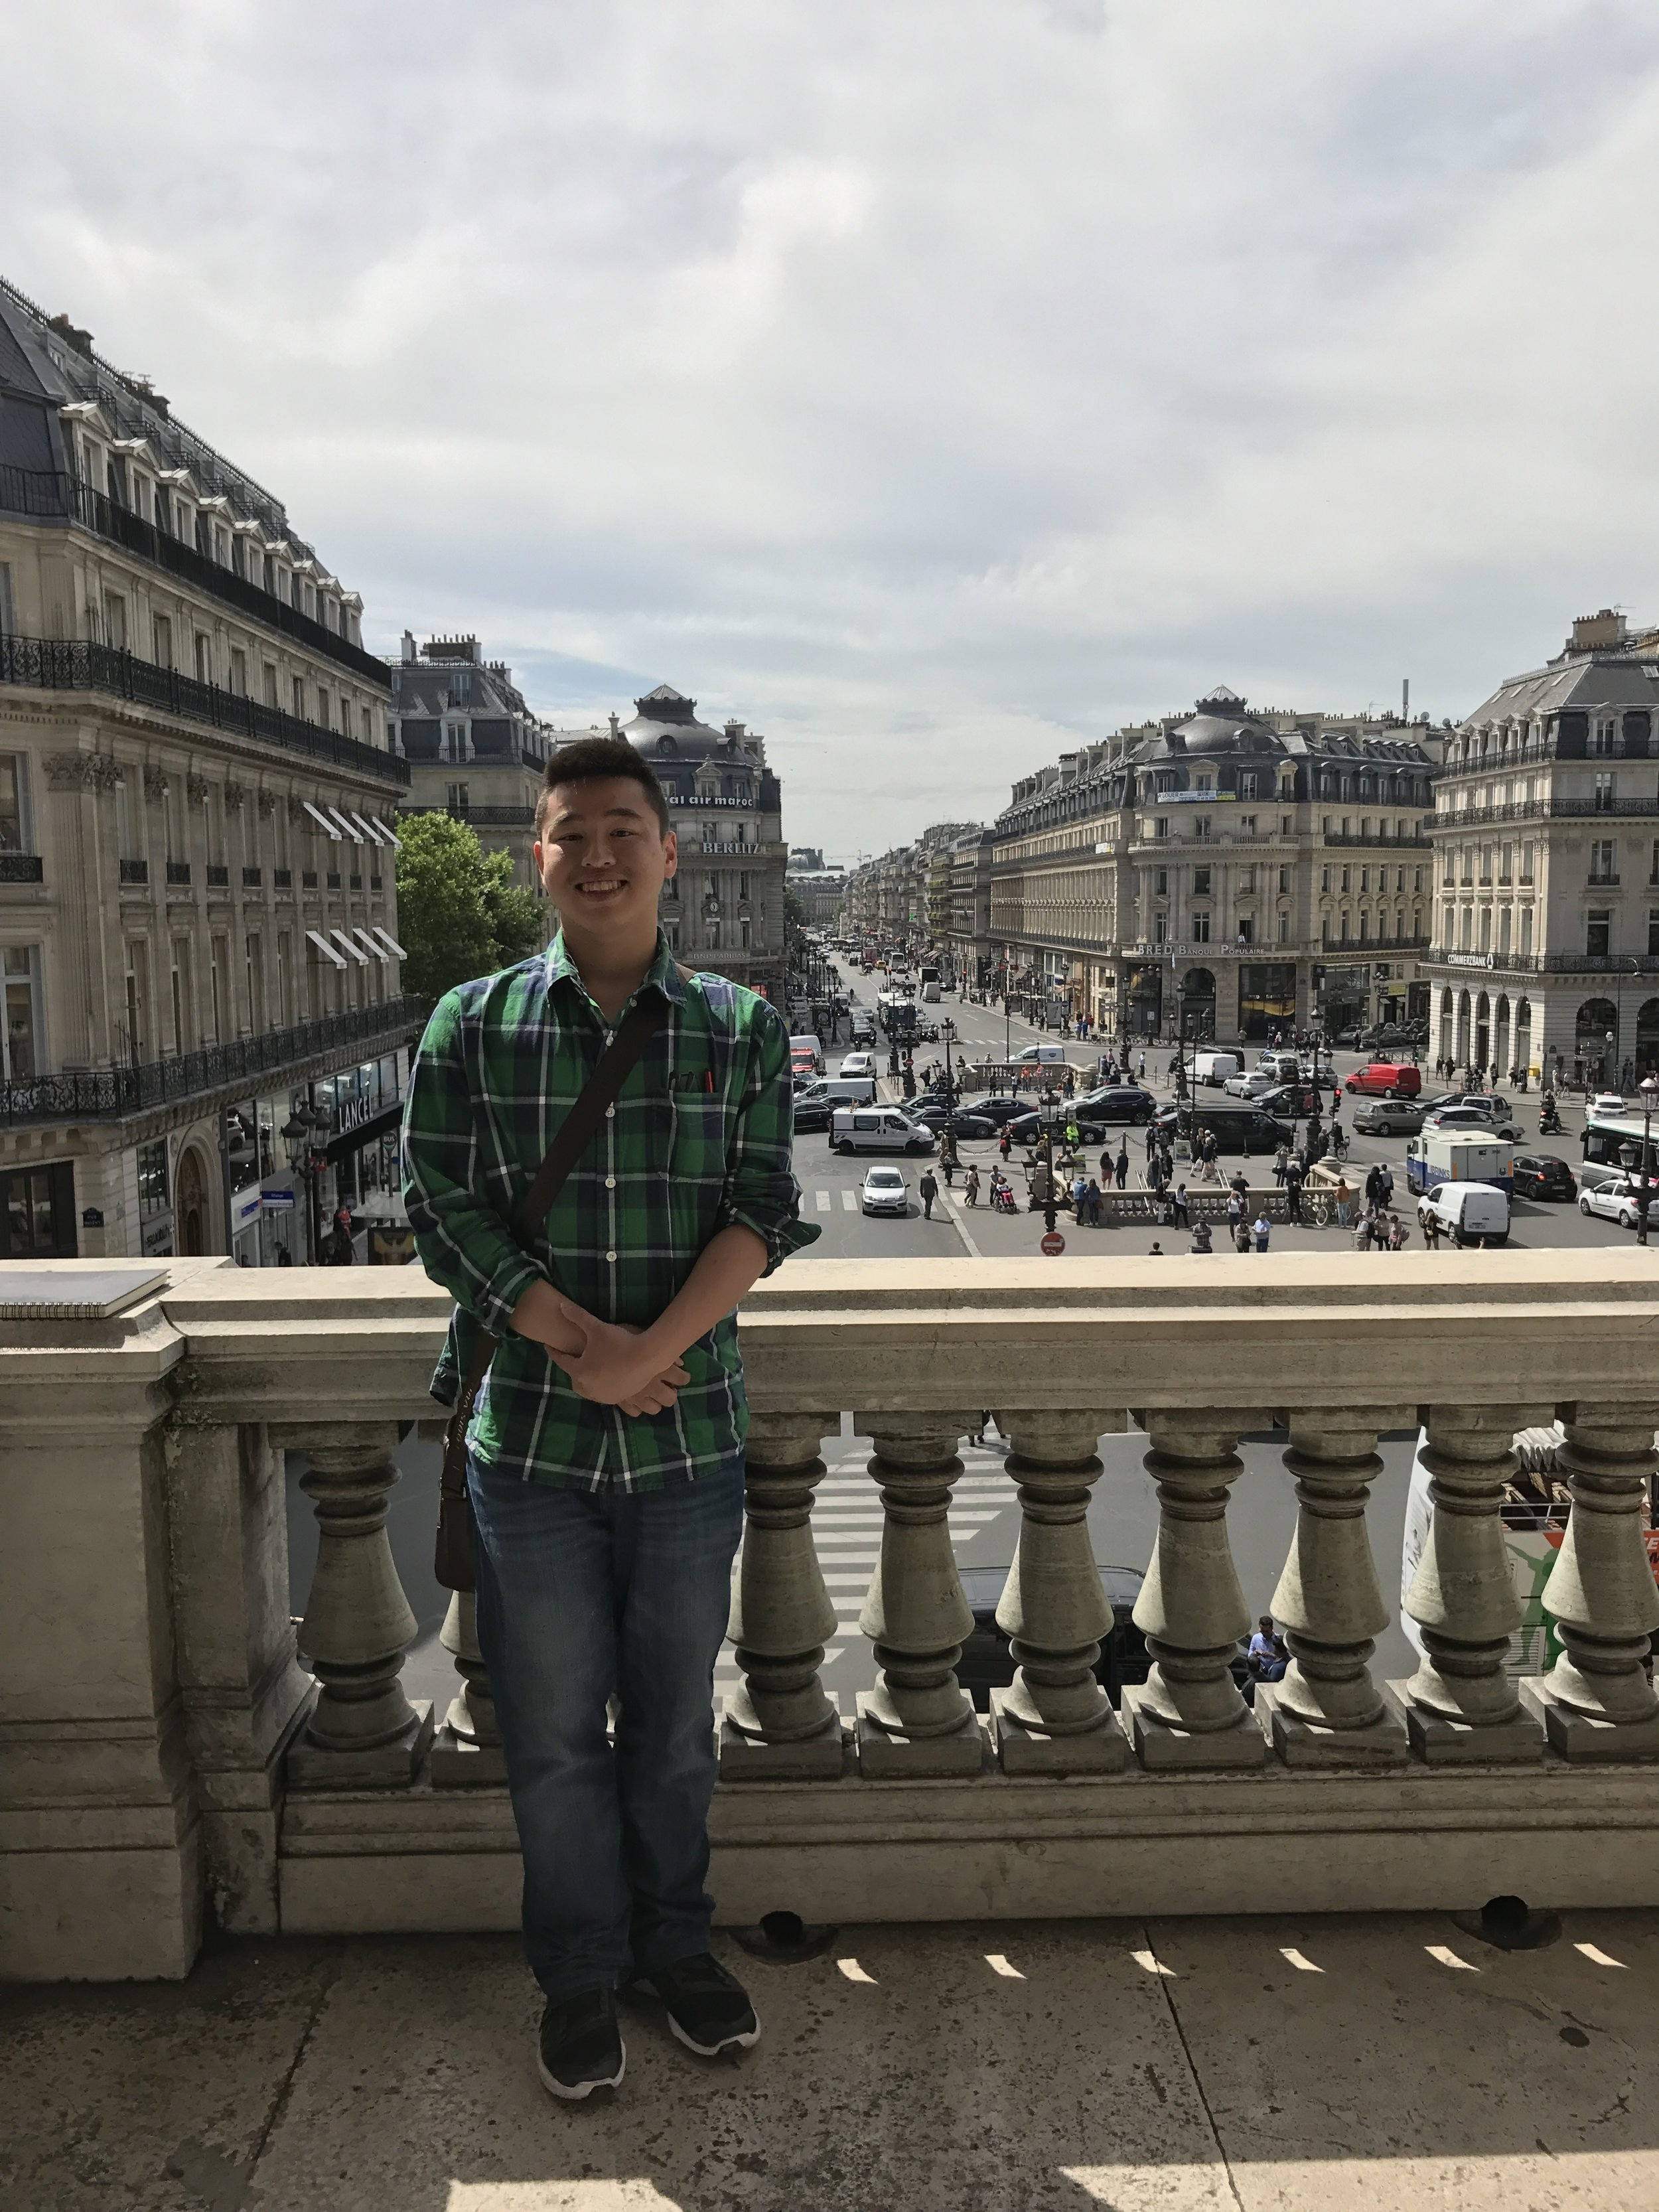 Nielsen enjoying the view of the Haussmannized streets from the Paris Opera House.